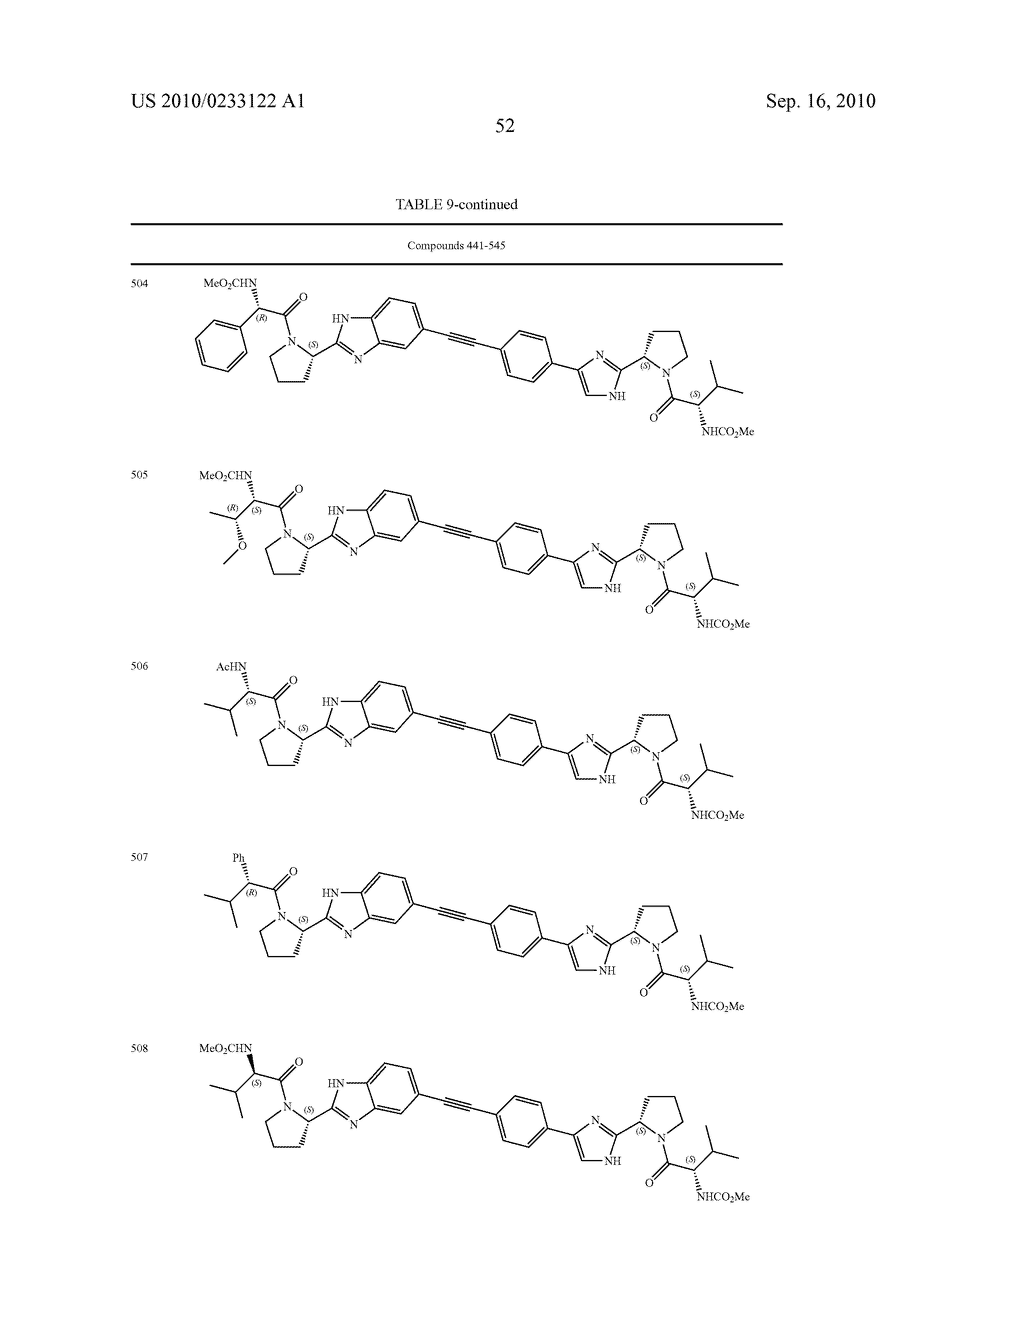 NOVEL BENZIMIDAZOLE DERIVATIVES - diagram, schematic, and image 53